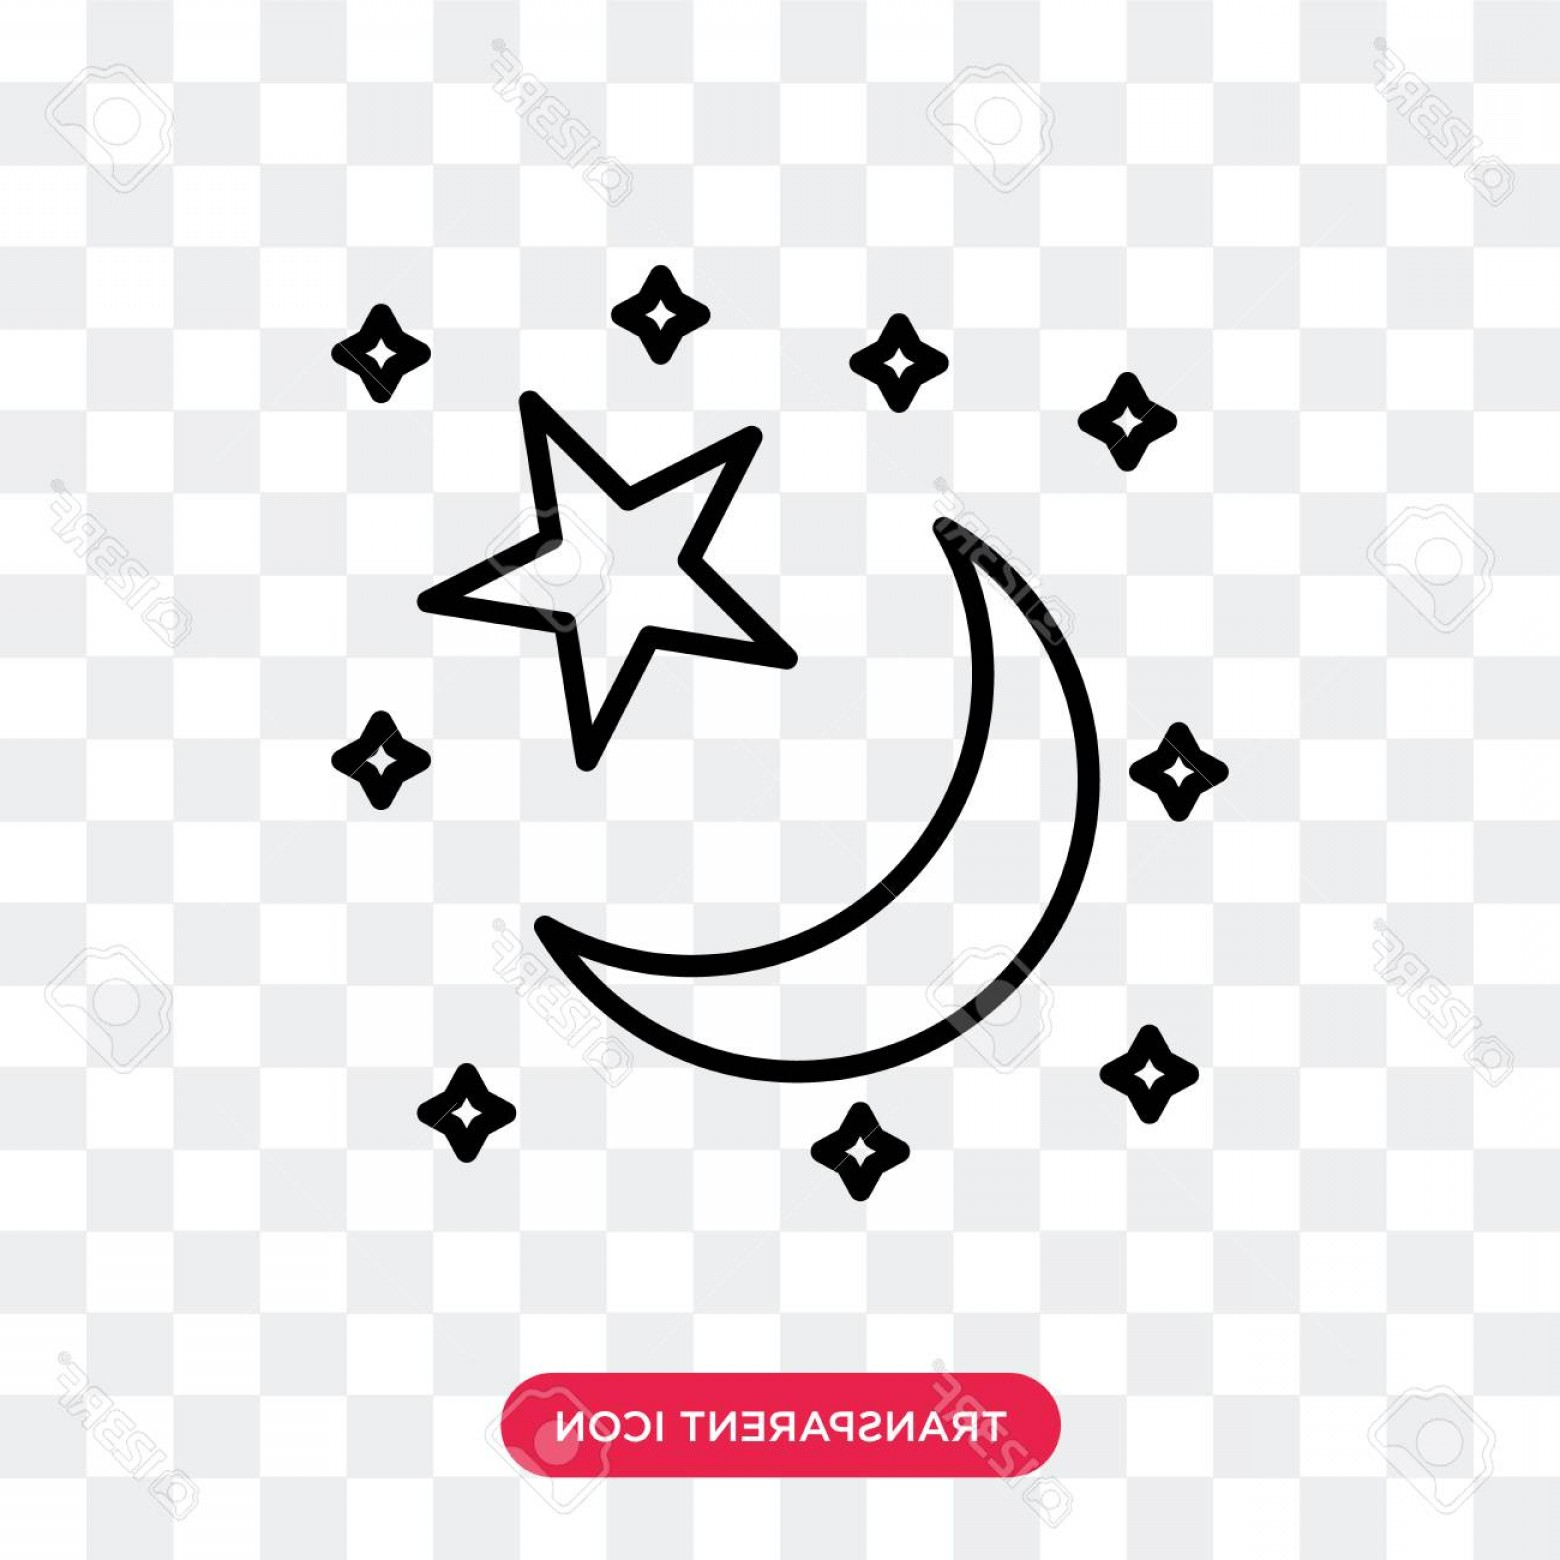 Star And Crescent Moon Vector: Photostock Vector Star And Crescent Moon Vector Icon Isolated On Transparent Background Star And Crescent Moon Logo Co